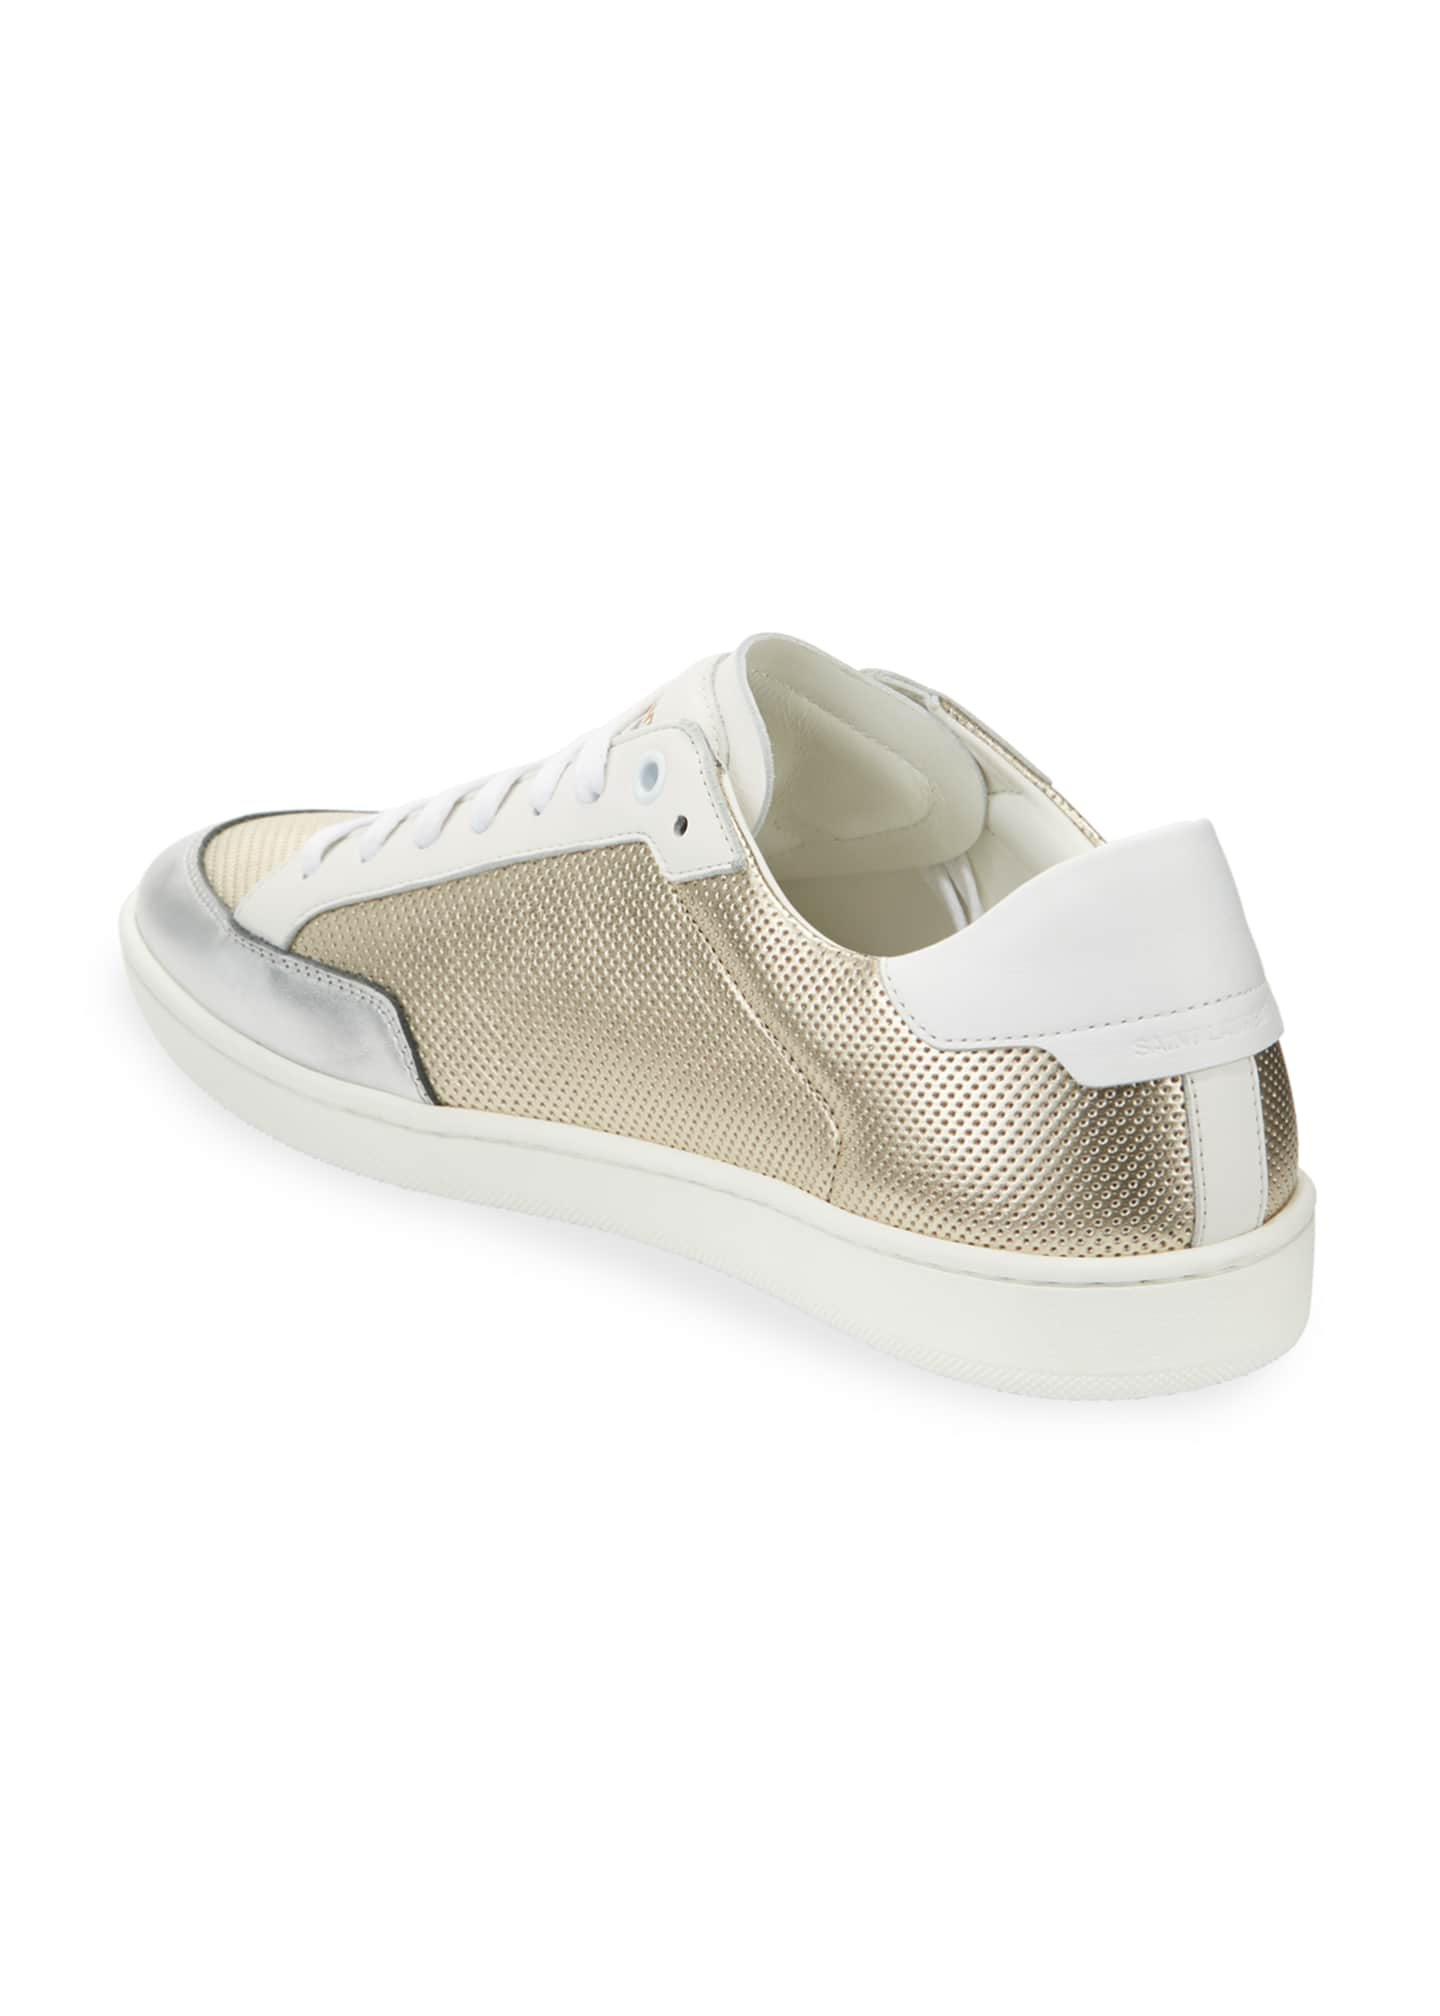 Image 4 of 4: Men's Perforated Metallic Leather Low-Top Sneakers